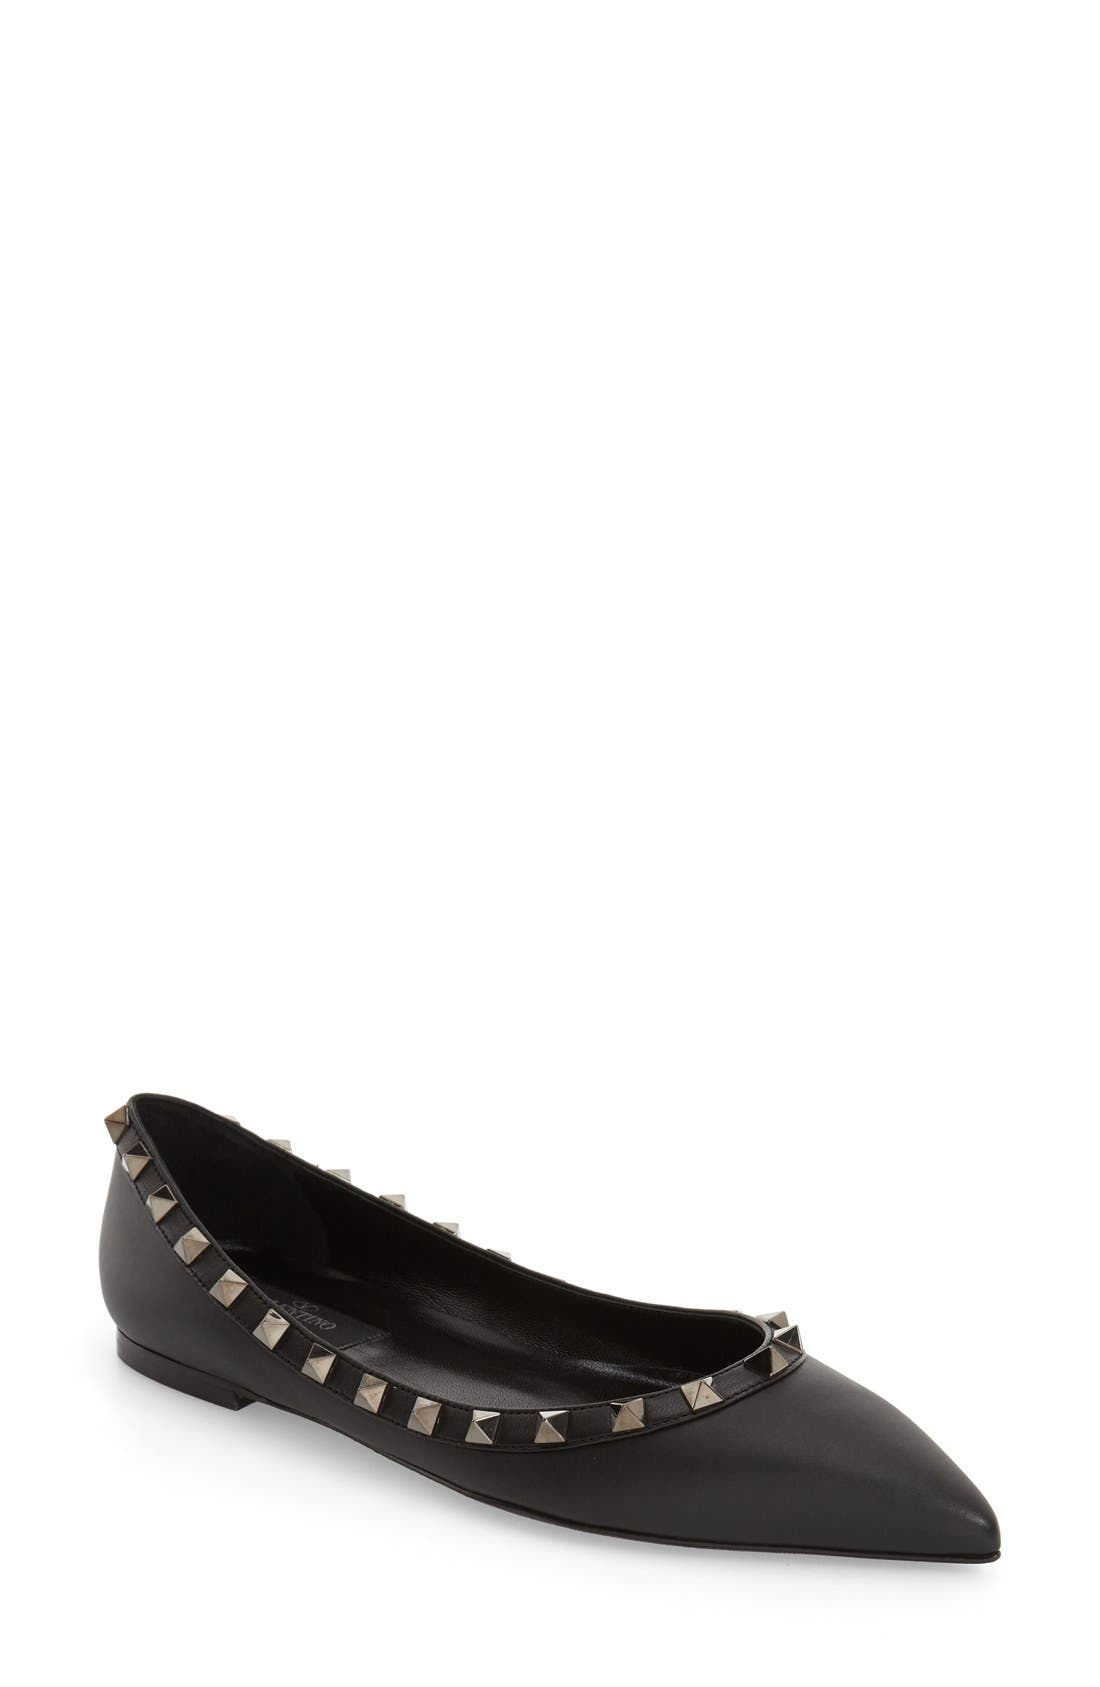 Alternate Image 1 Selected - Valentino 'Rockstud' Flat